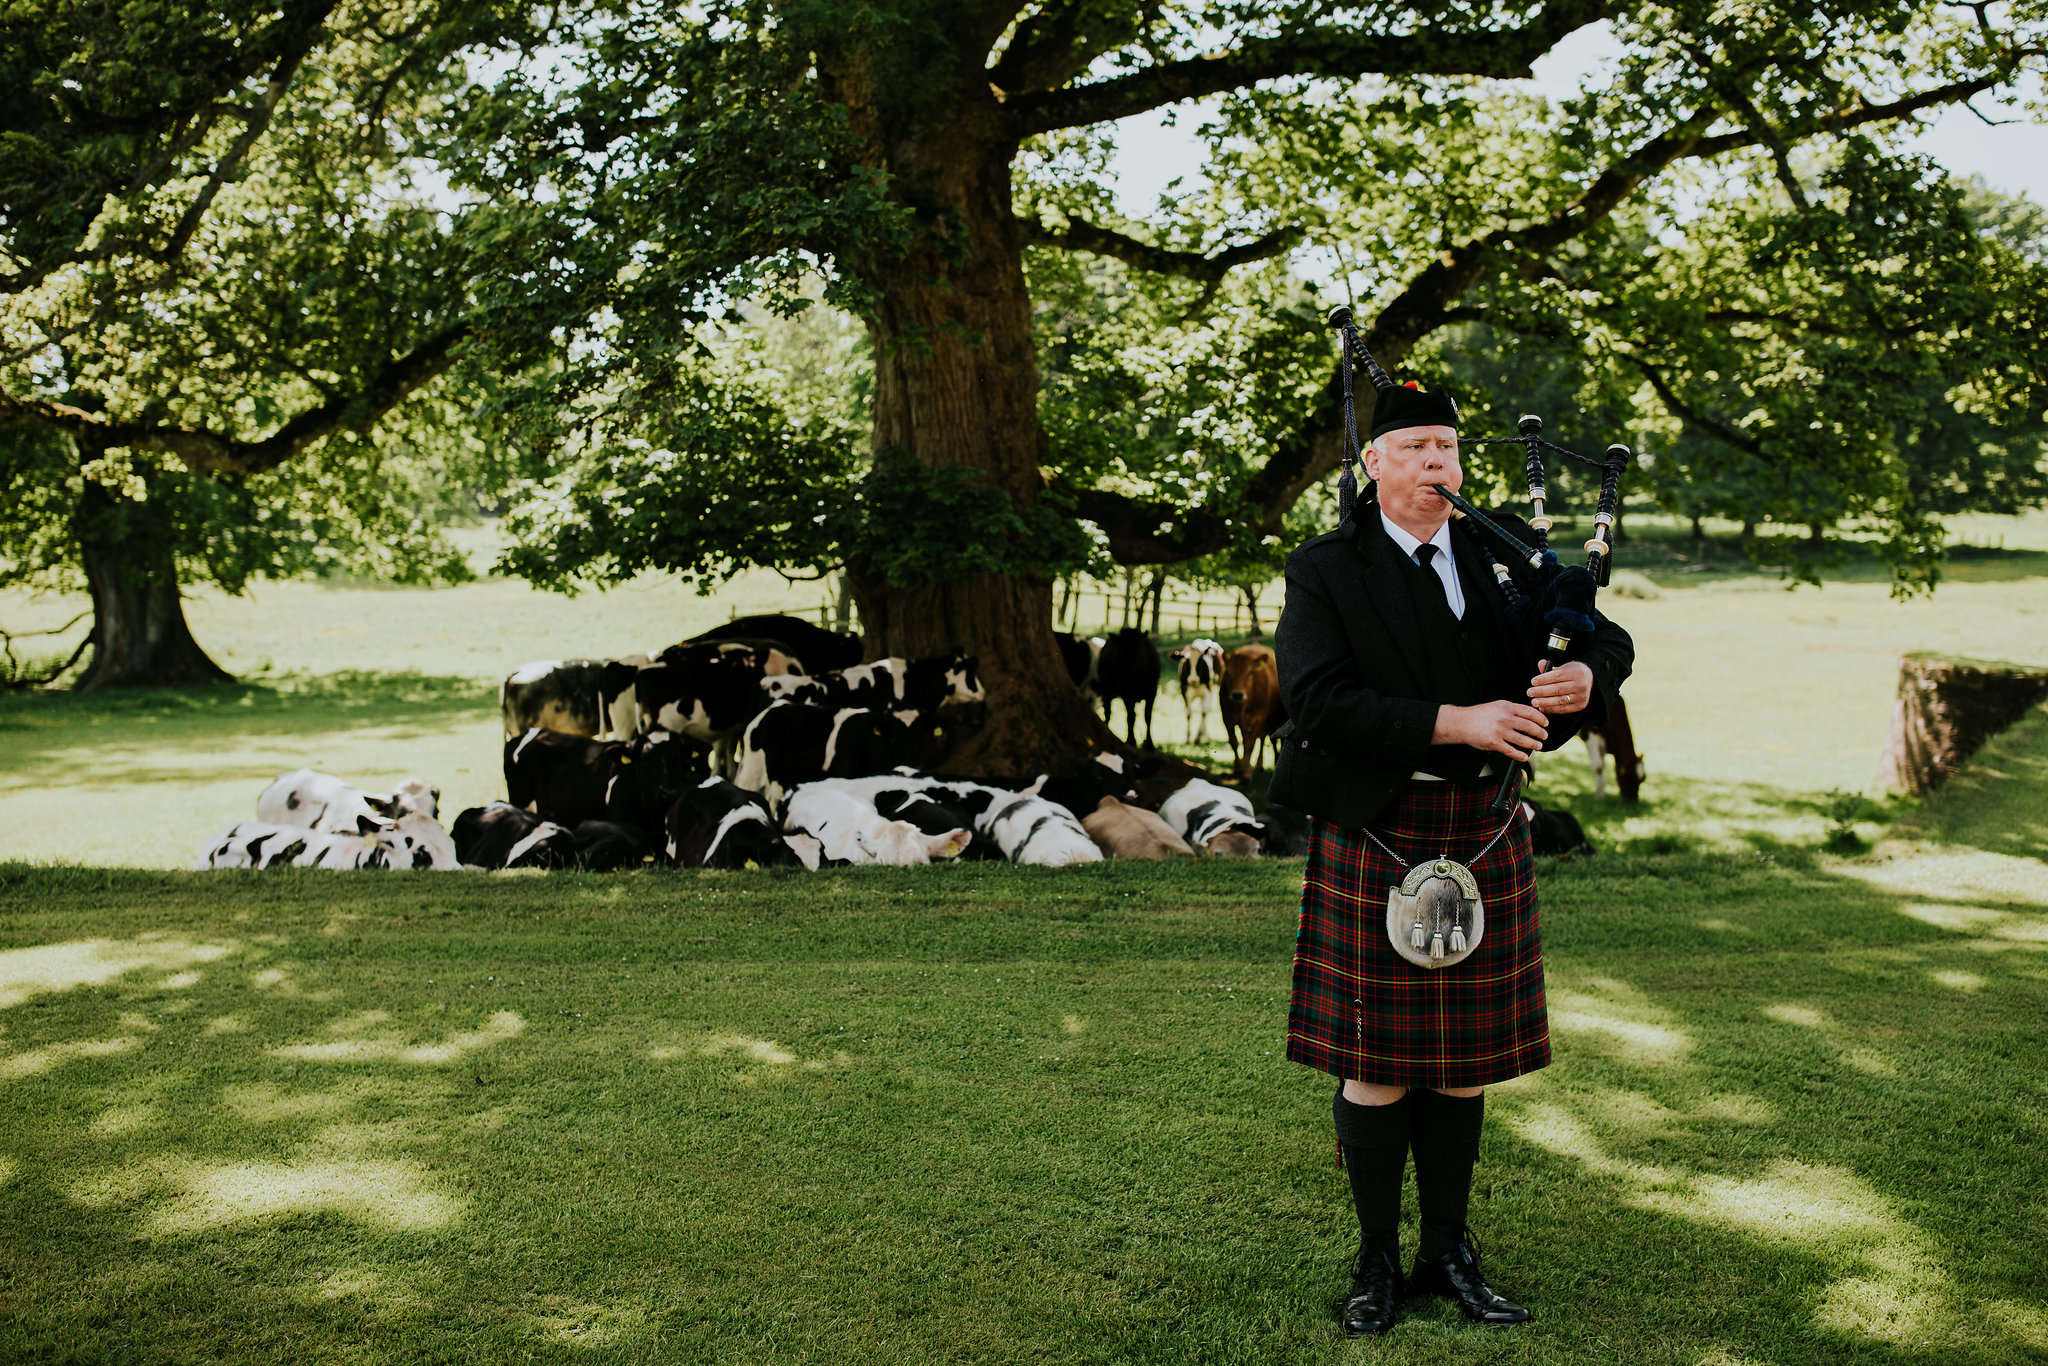 Duns_Castle_wedding_photographer_ross_alexander_photography (60).jpg